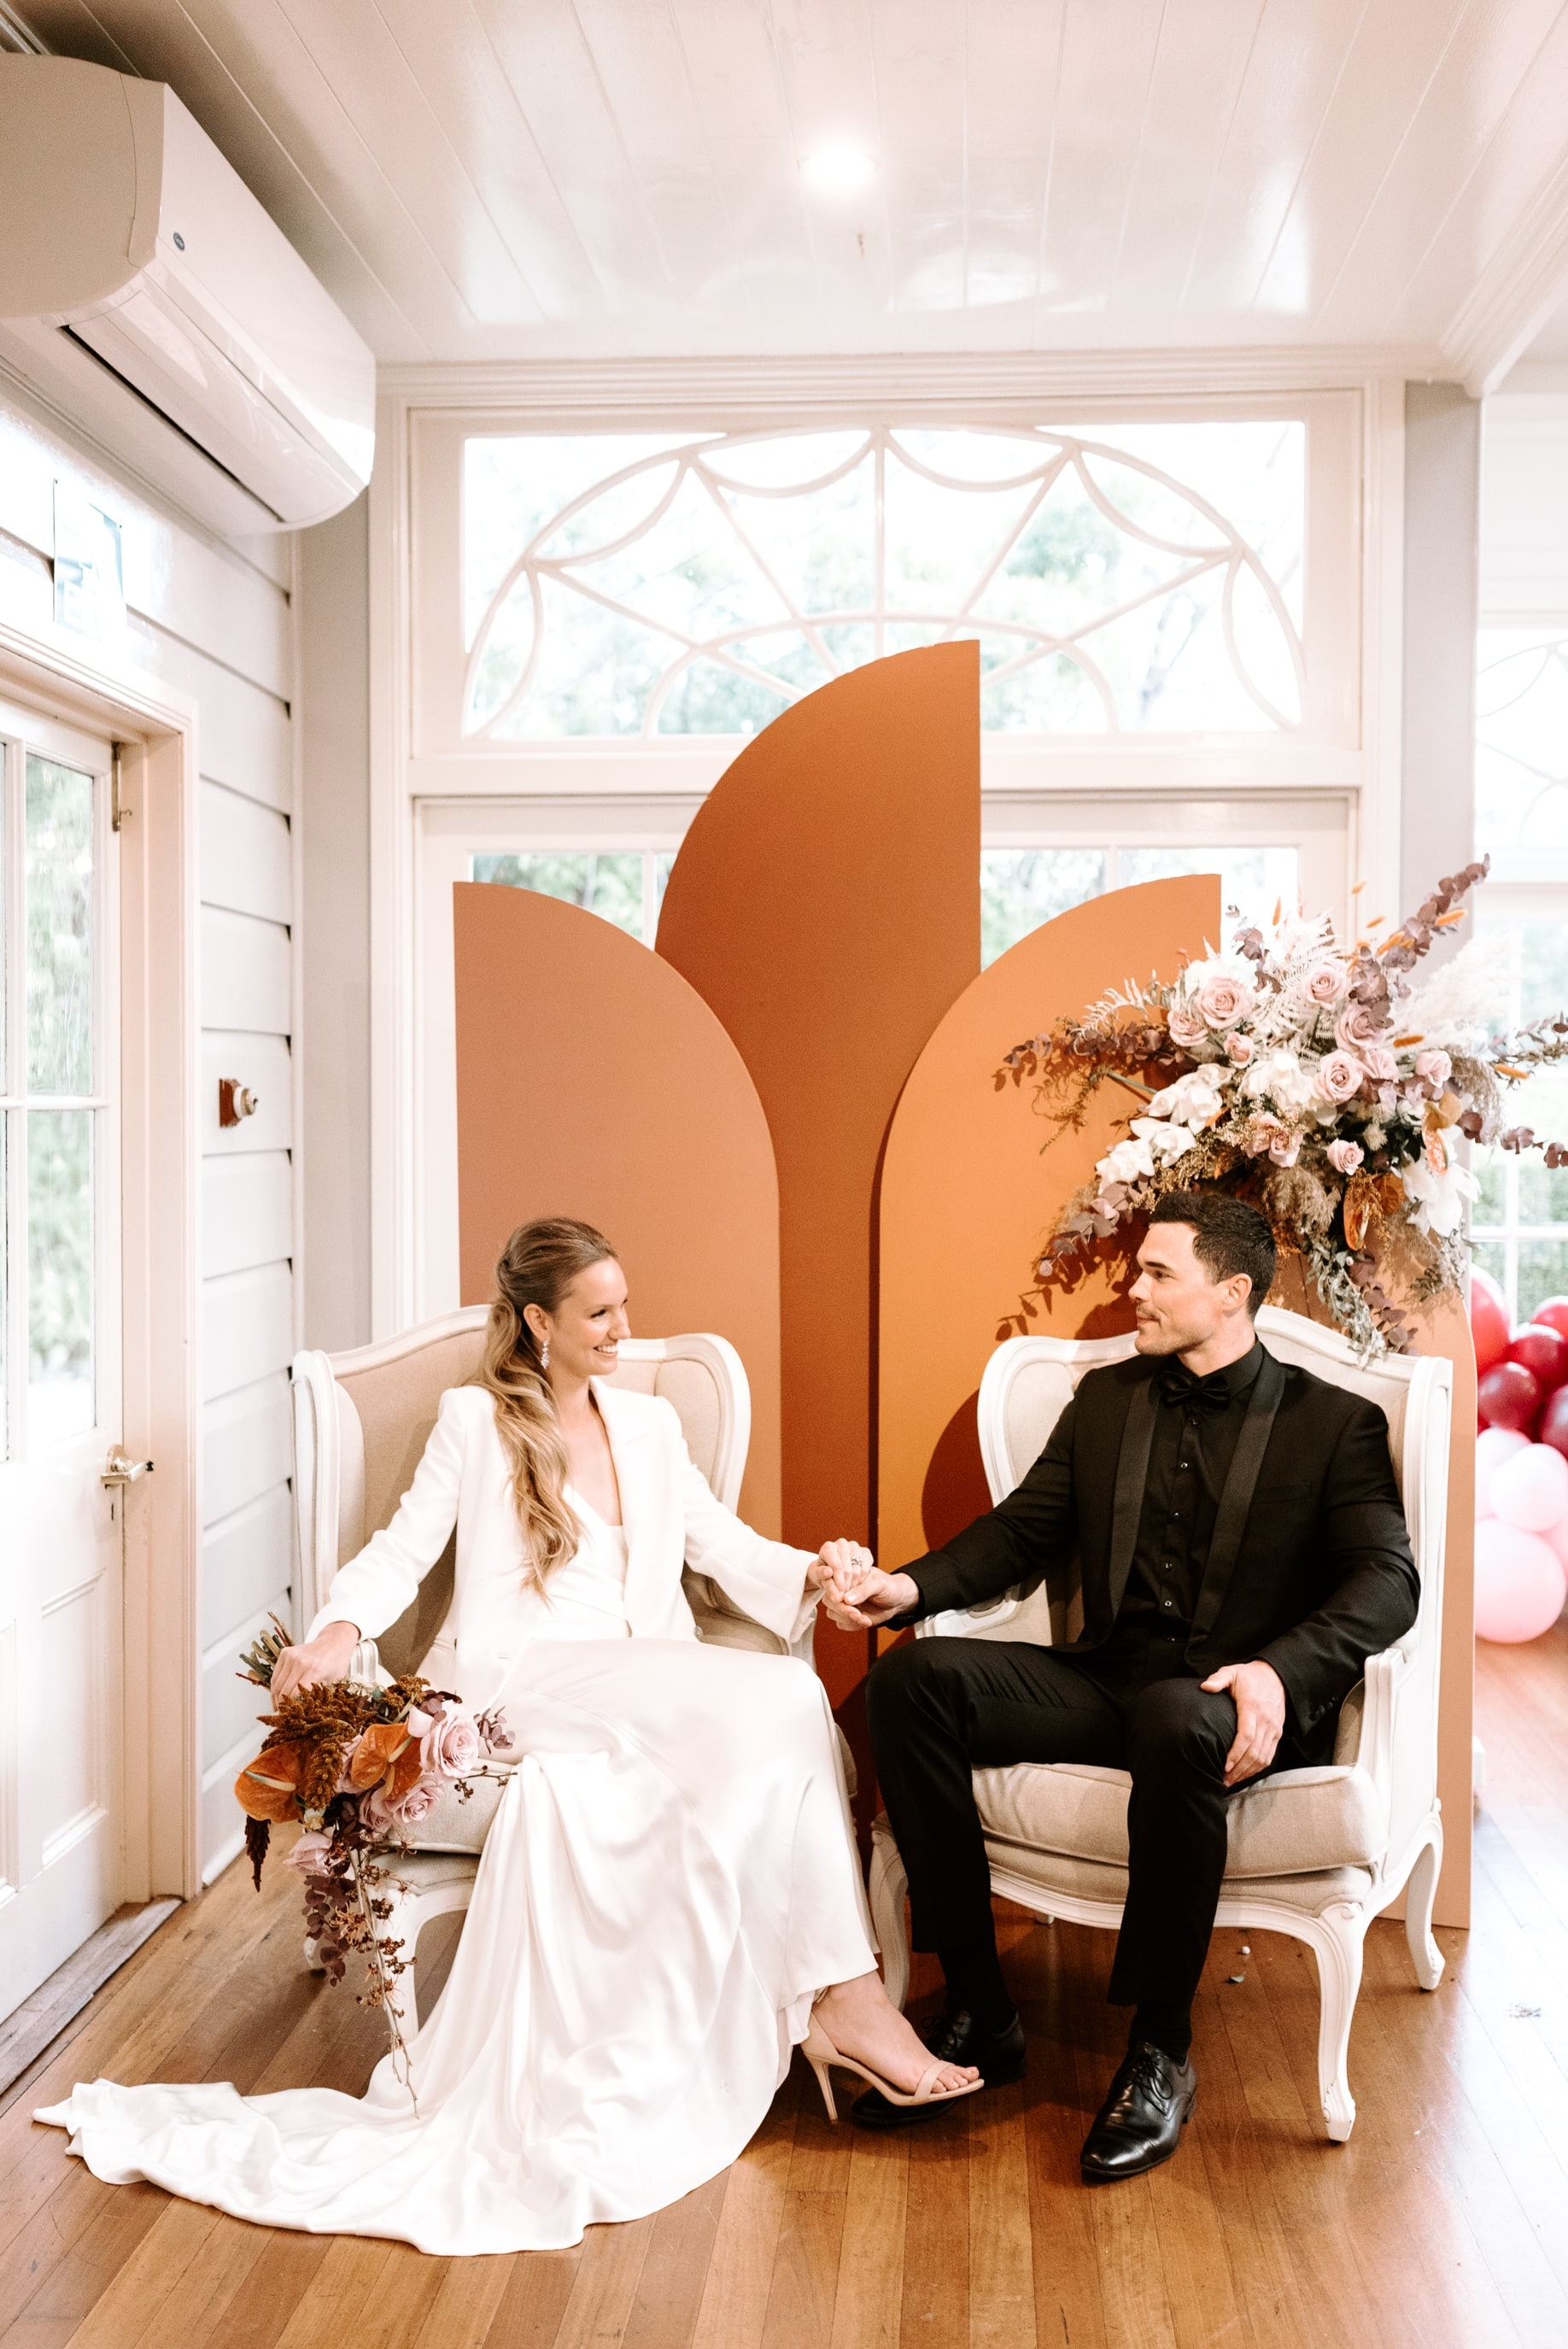 Bride and groom sitting on chairs holding hands with colourful arch backdrop